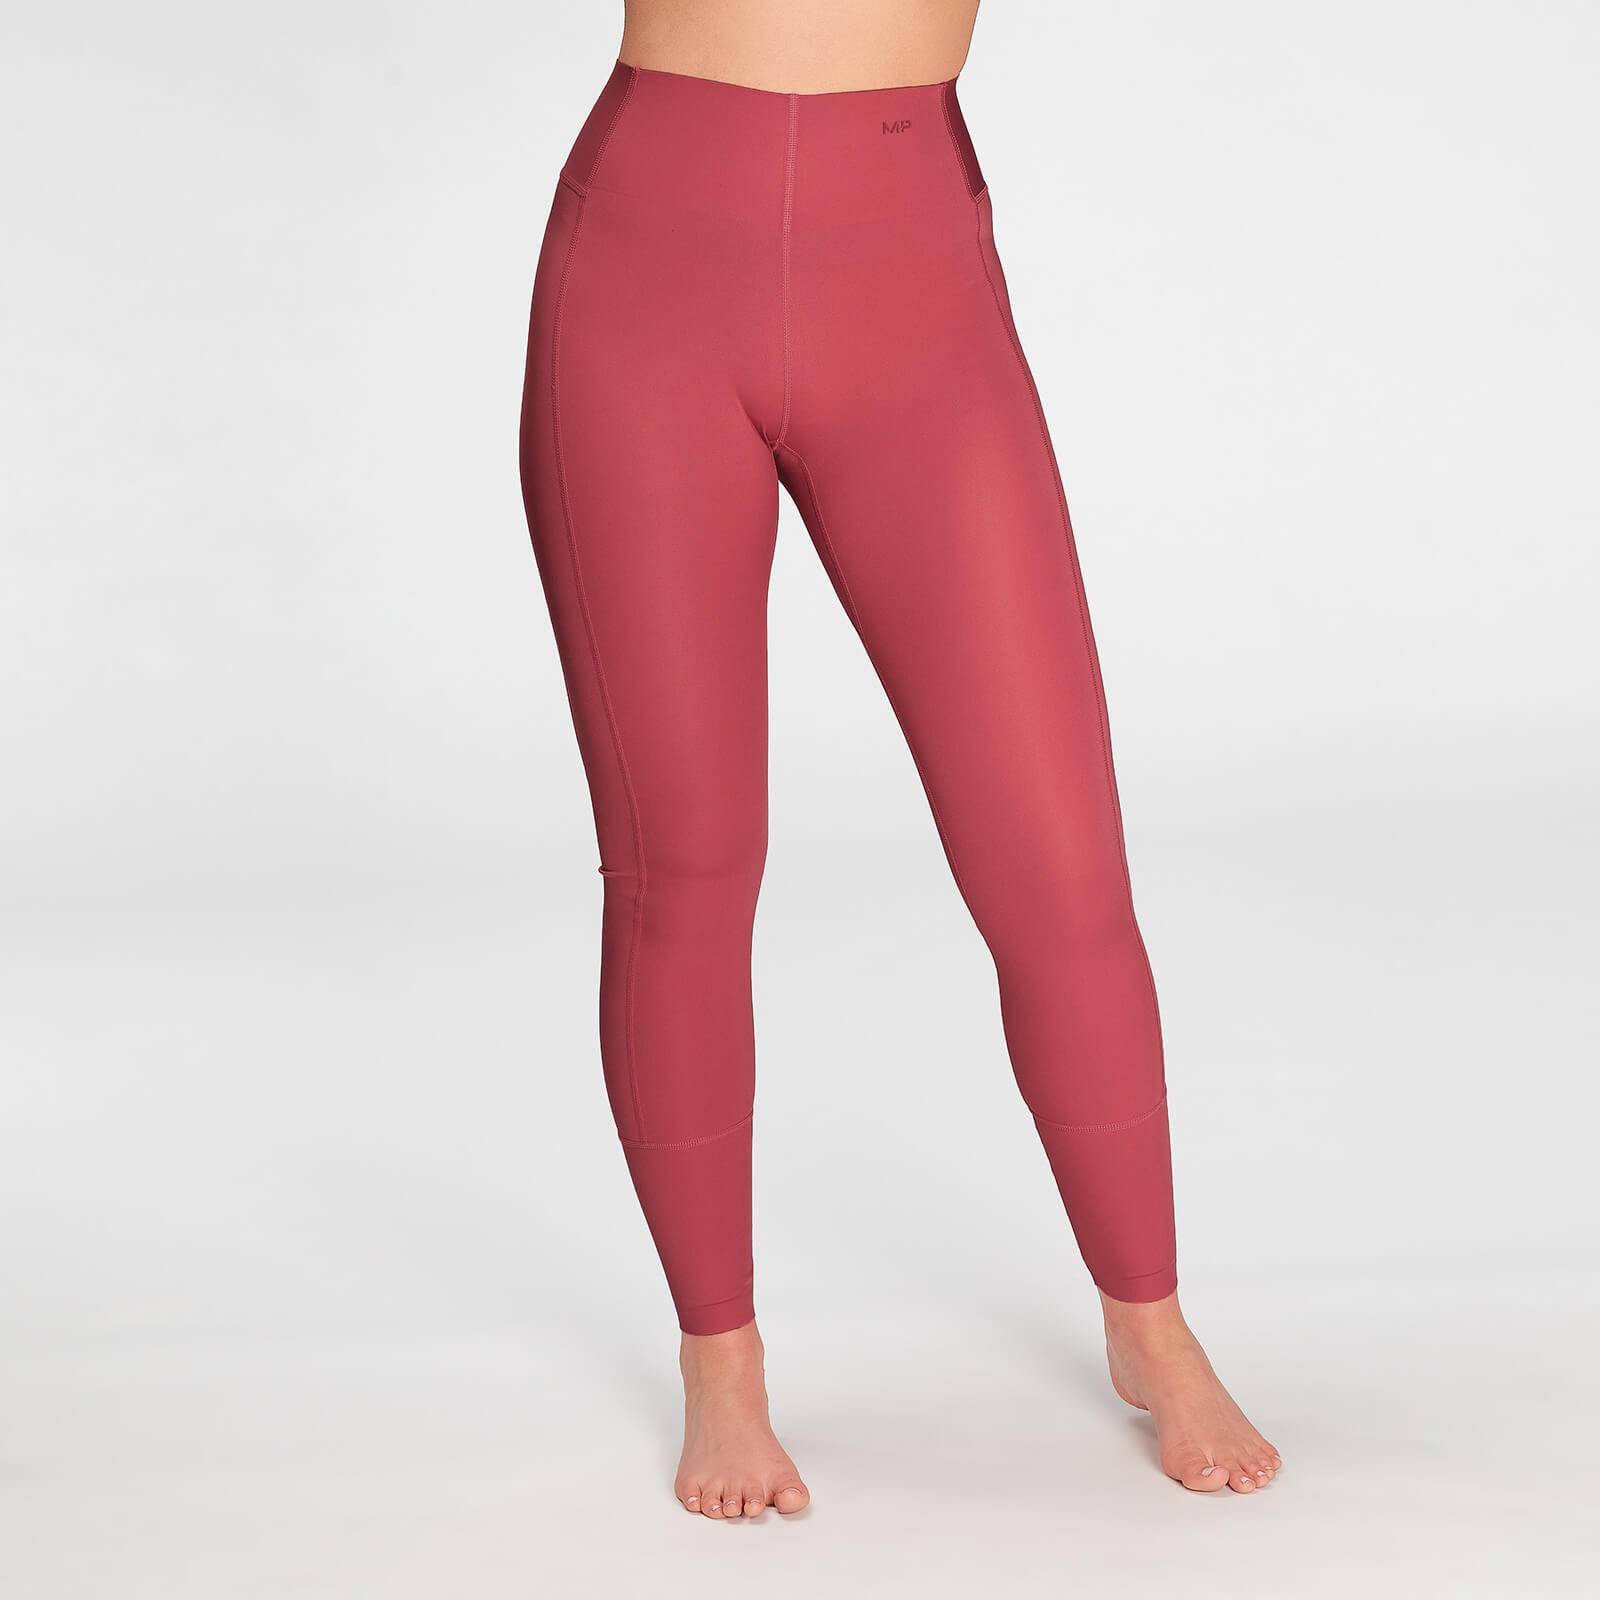 Mp Women's Coosure Repreve® Leggings - Berry Pink - L